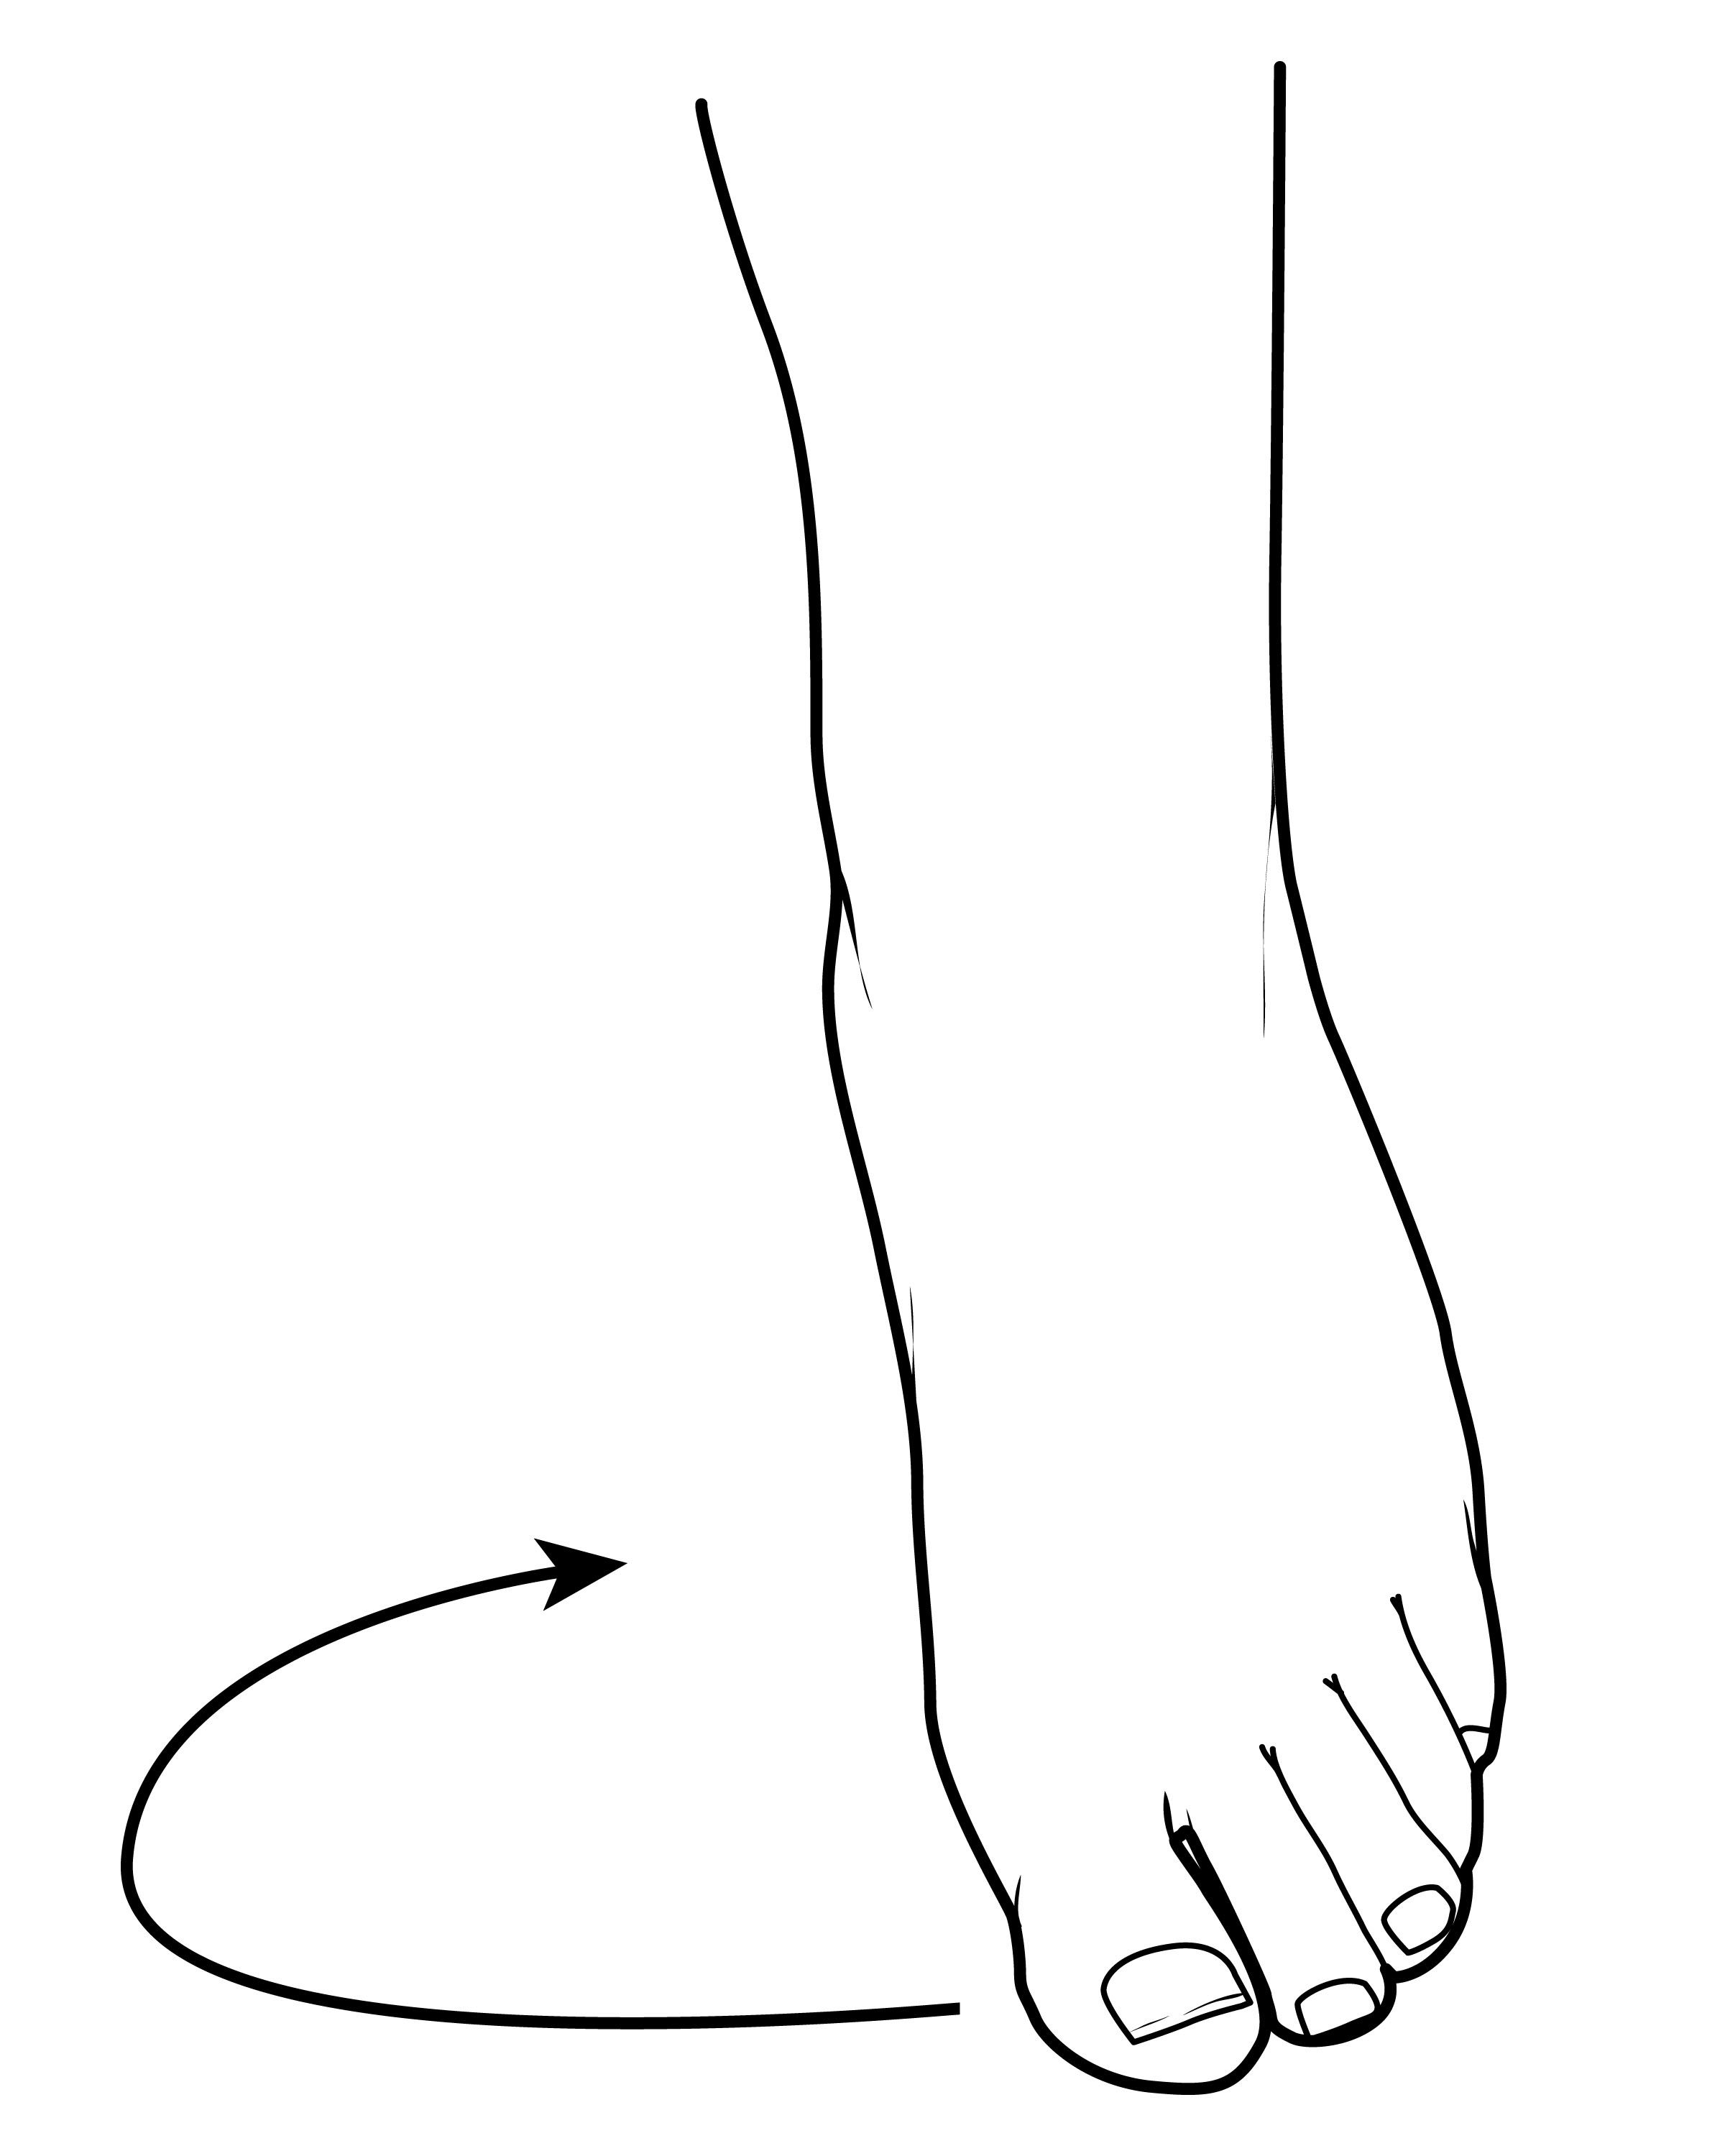 Foot and Ankle Conditioning Program.